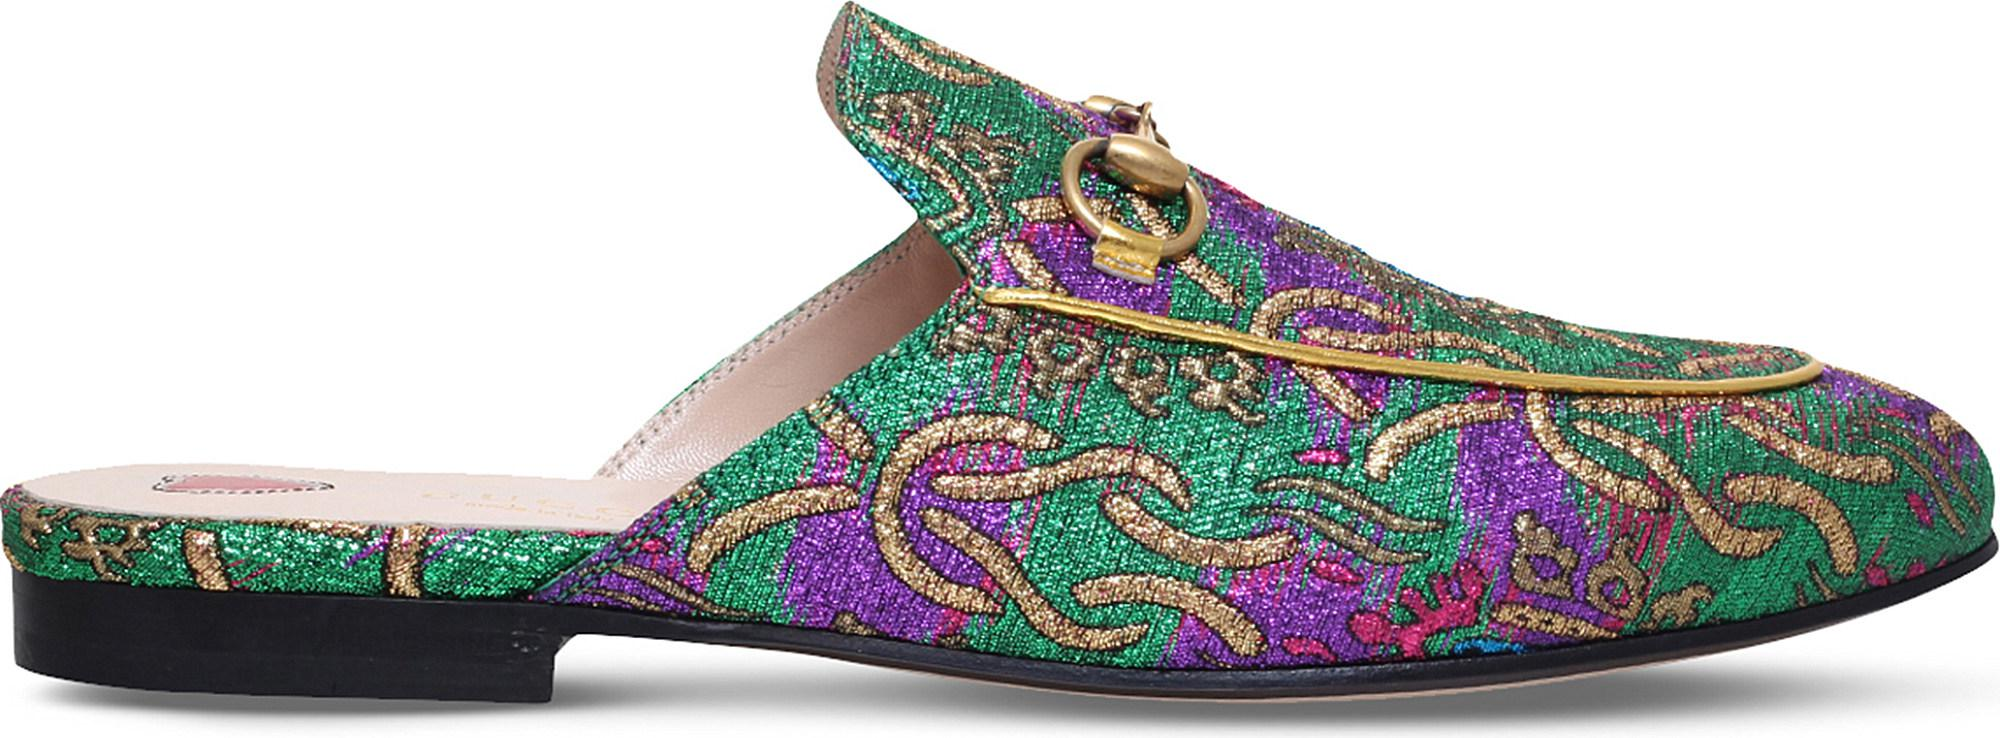 200dc5cf405 Lyst - Gucci Princetown Chinoiserie Jacquard Slippers in Green